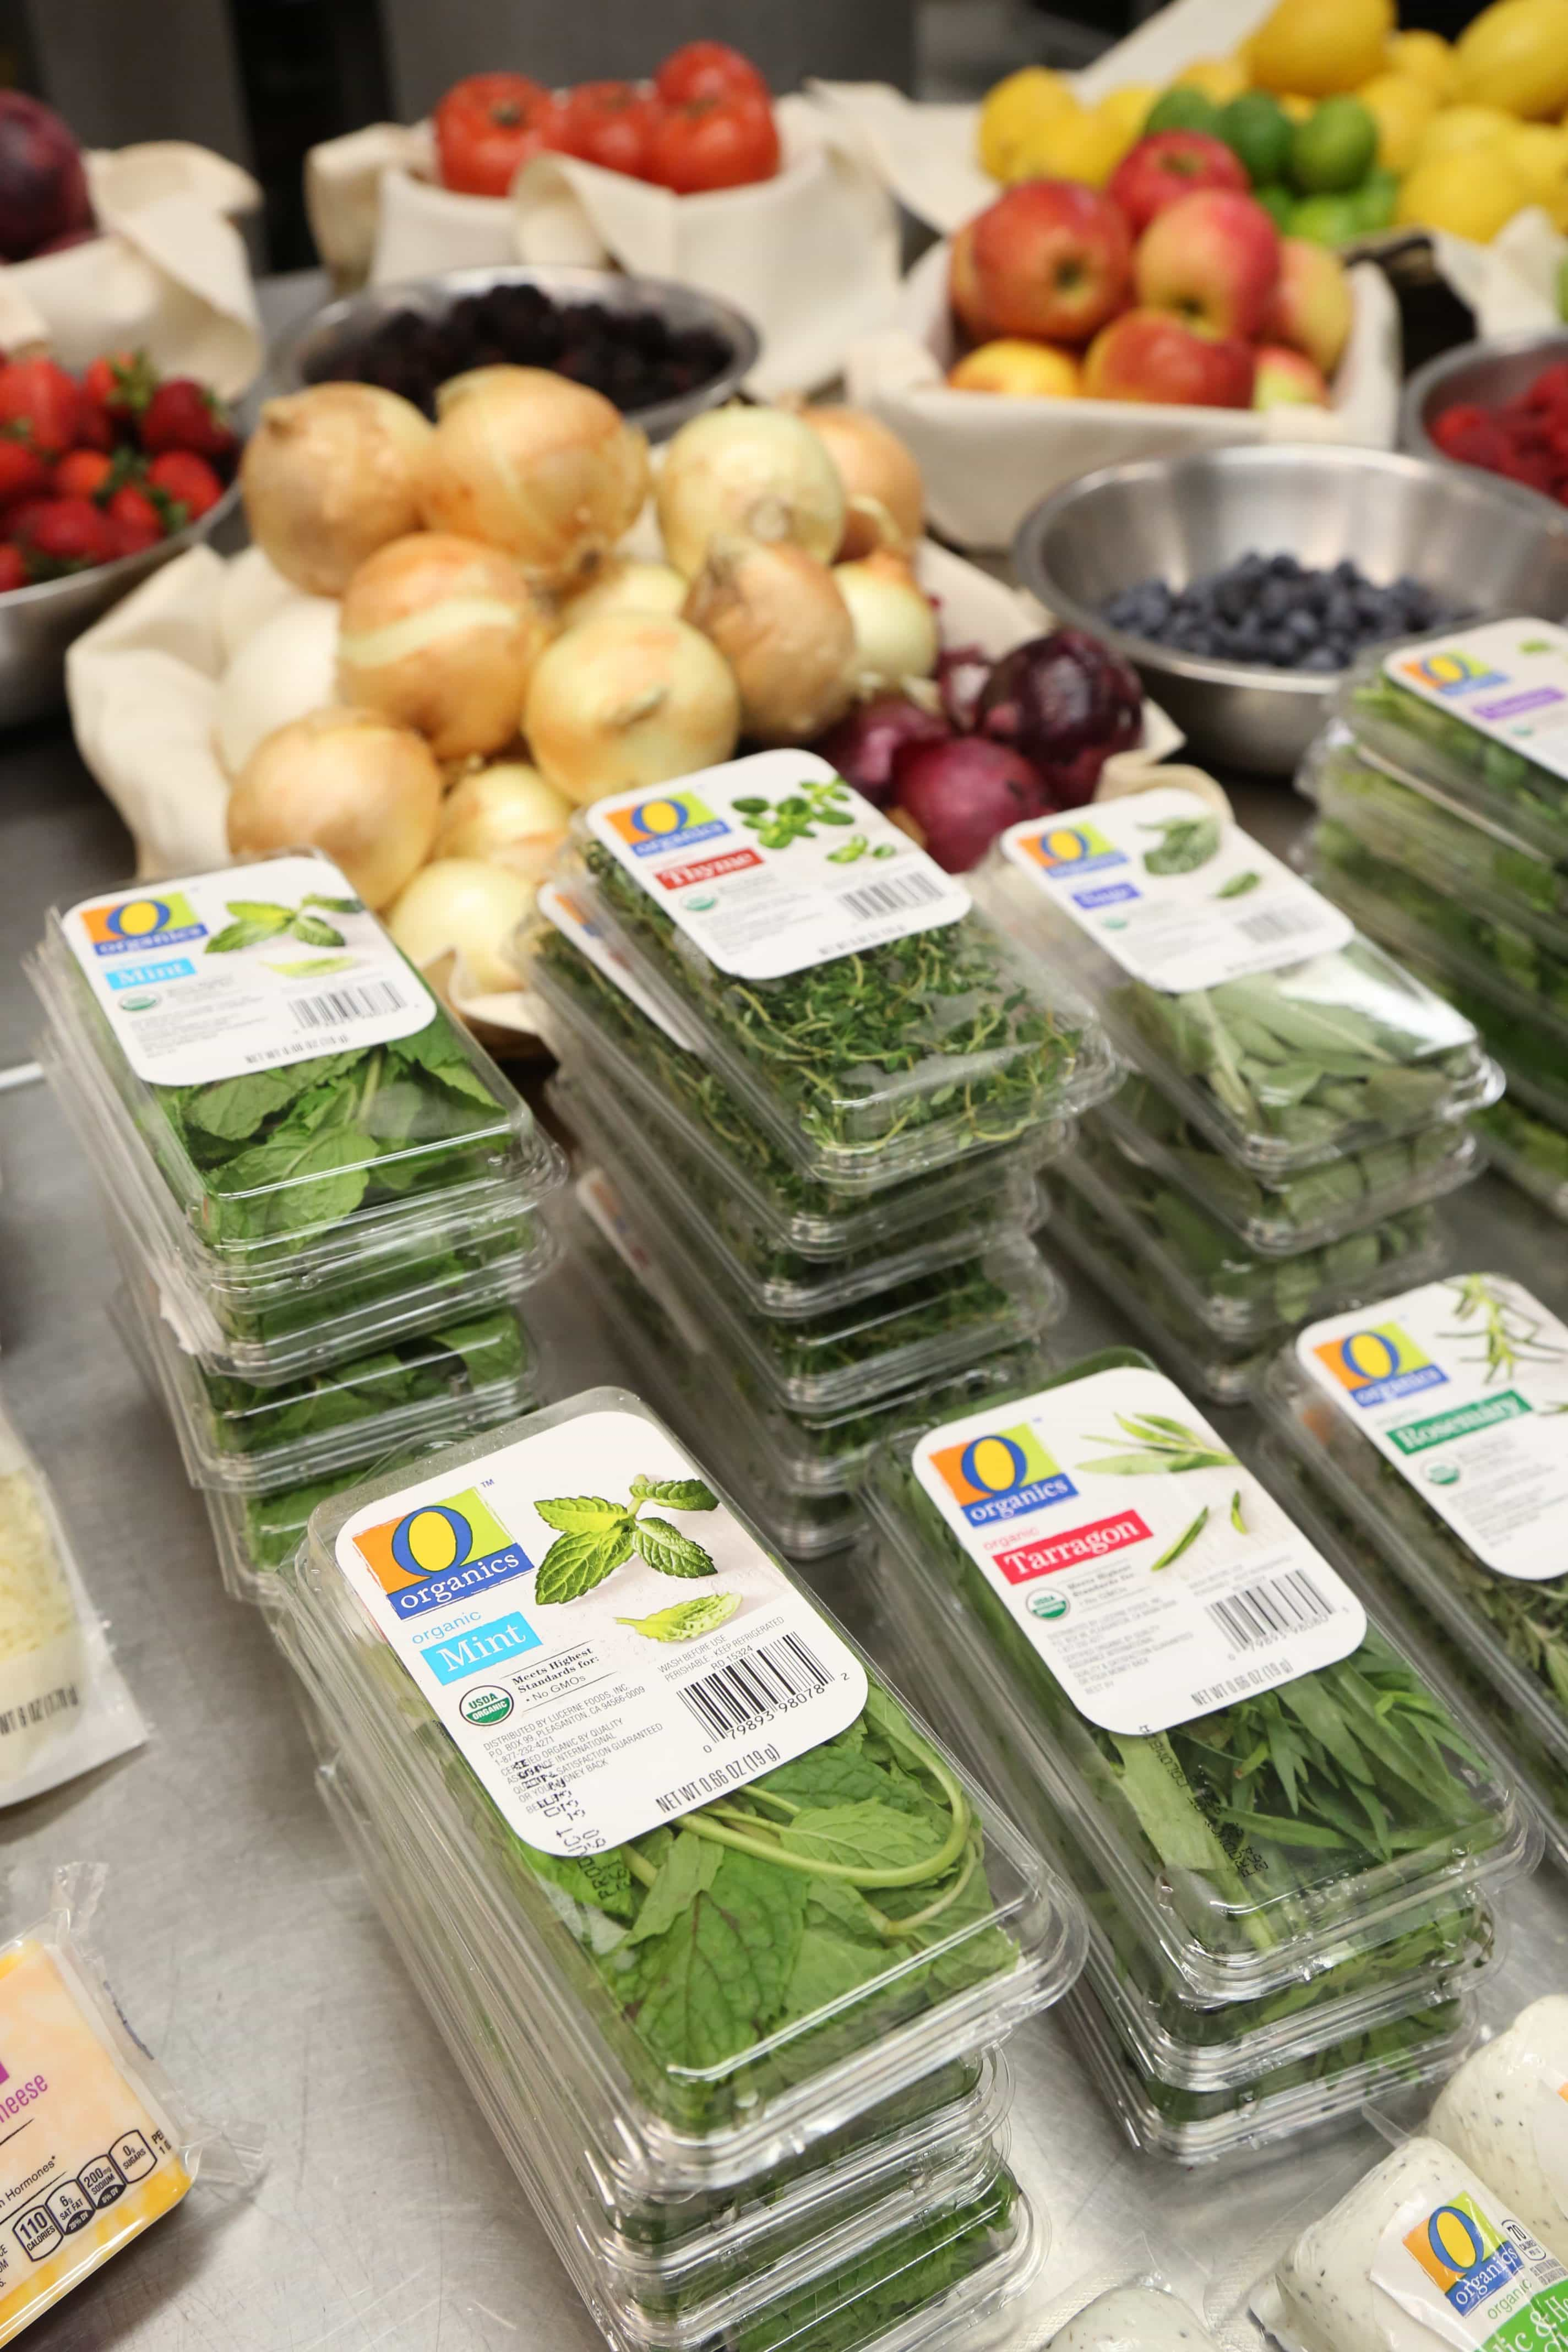 Shop O Organics for a full line of amazing and affordable organic options. O Organics products are available at Albertsons Companies stores across the country, including Albertsons, Safeway, ACME Markets, Vons, Jewel-Osco, Shaw's, Tom Thumb, Randalls, Pavilions and Star Market.